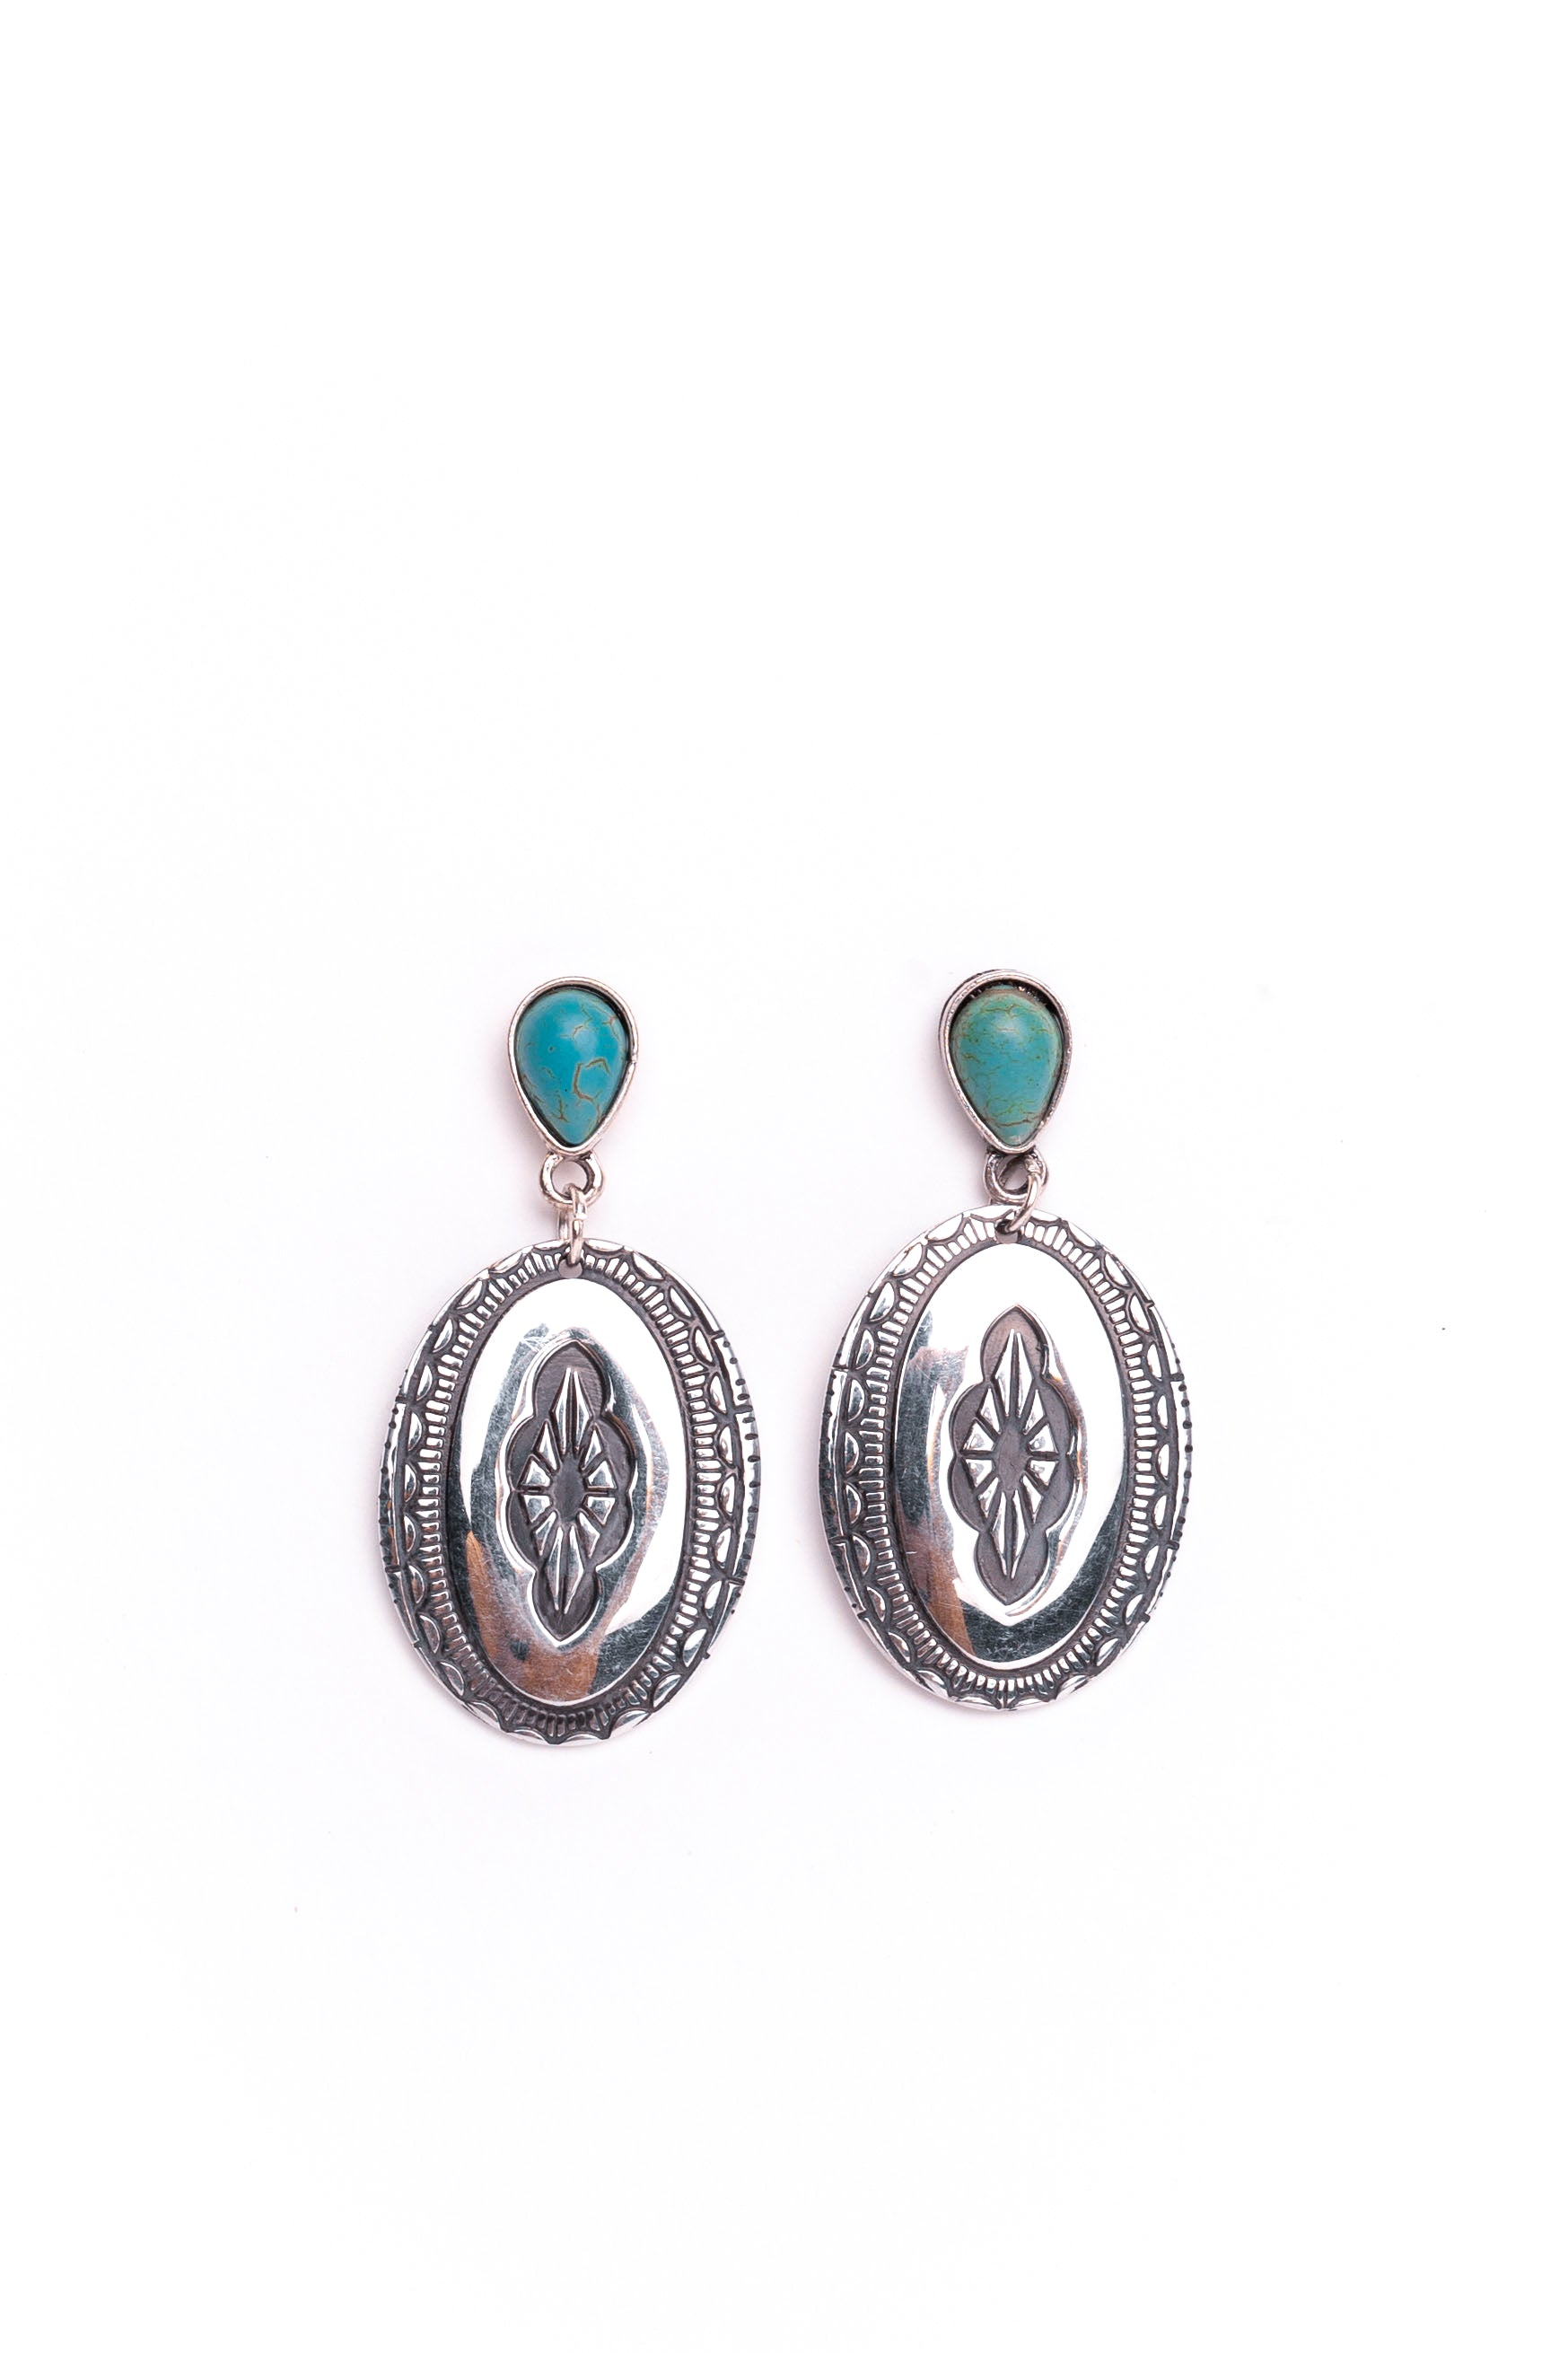 Oval Concho Earrings With Turquoise Post